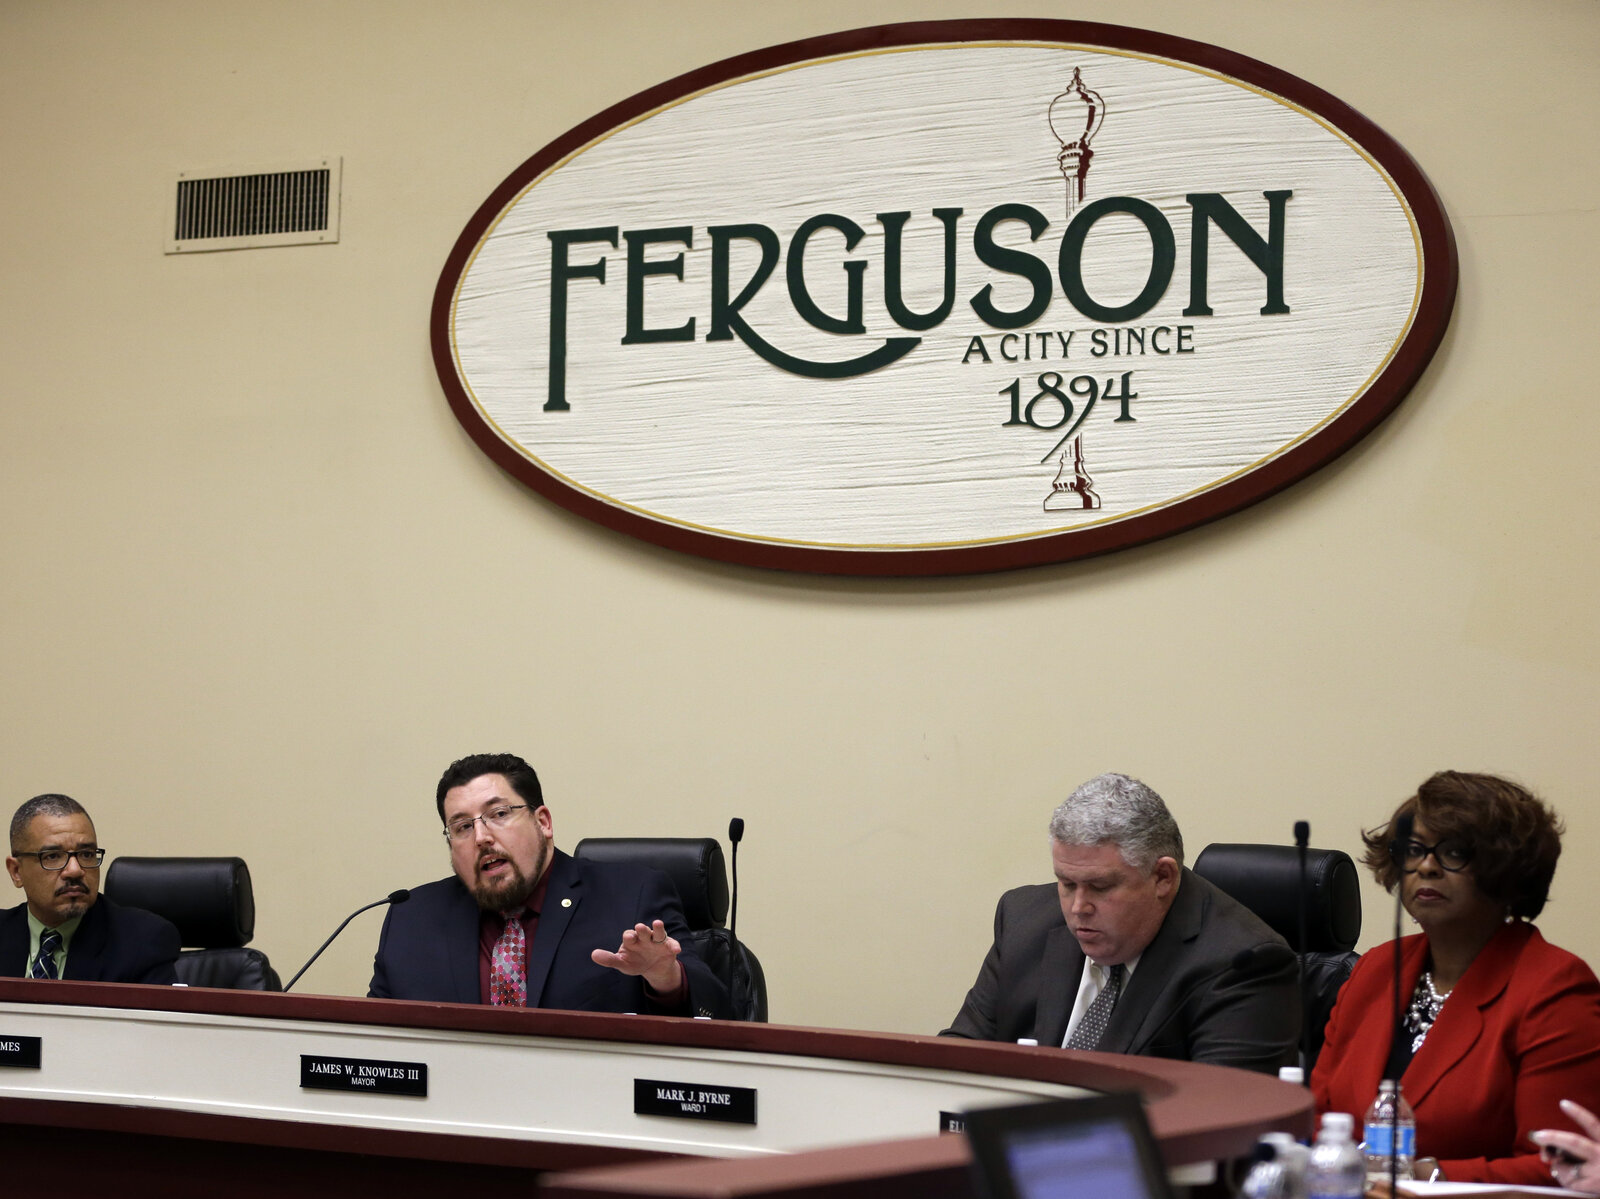 Ferguson mayor James Knowles III, (second from left) speaks during a city council meeting on Feb. 2. The meeting was the first opportunity for residents to speak directly with city leaders about the preliminary consent agreement with the U.S. Department of Justice.